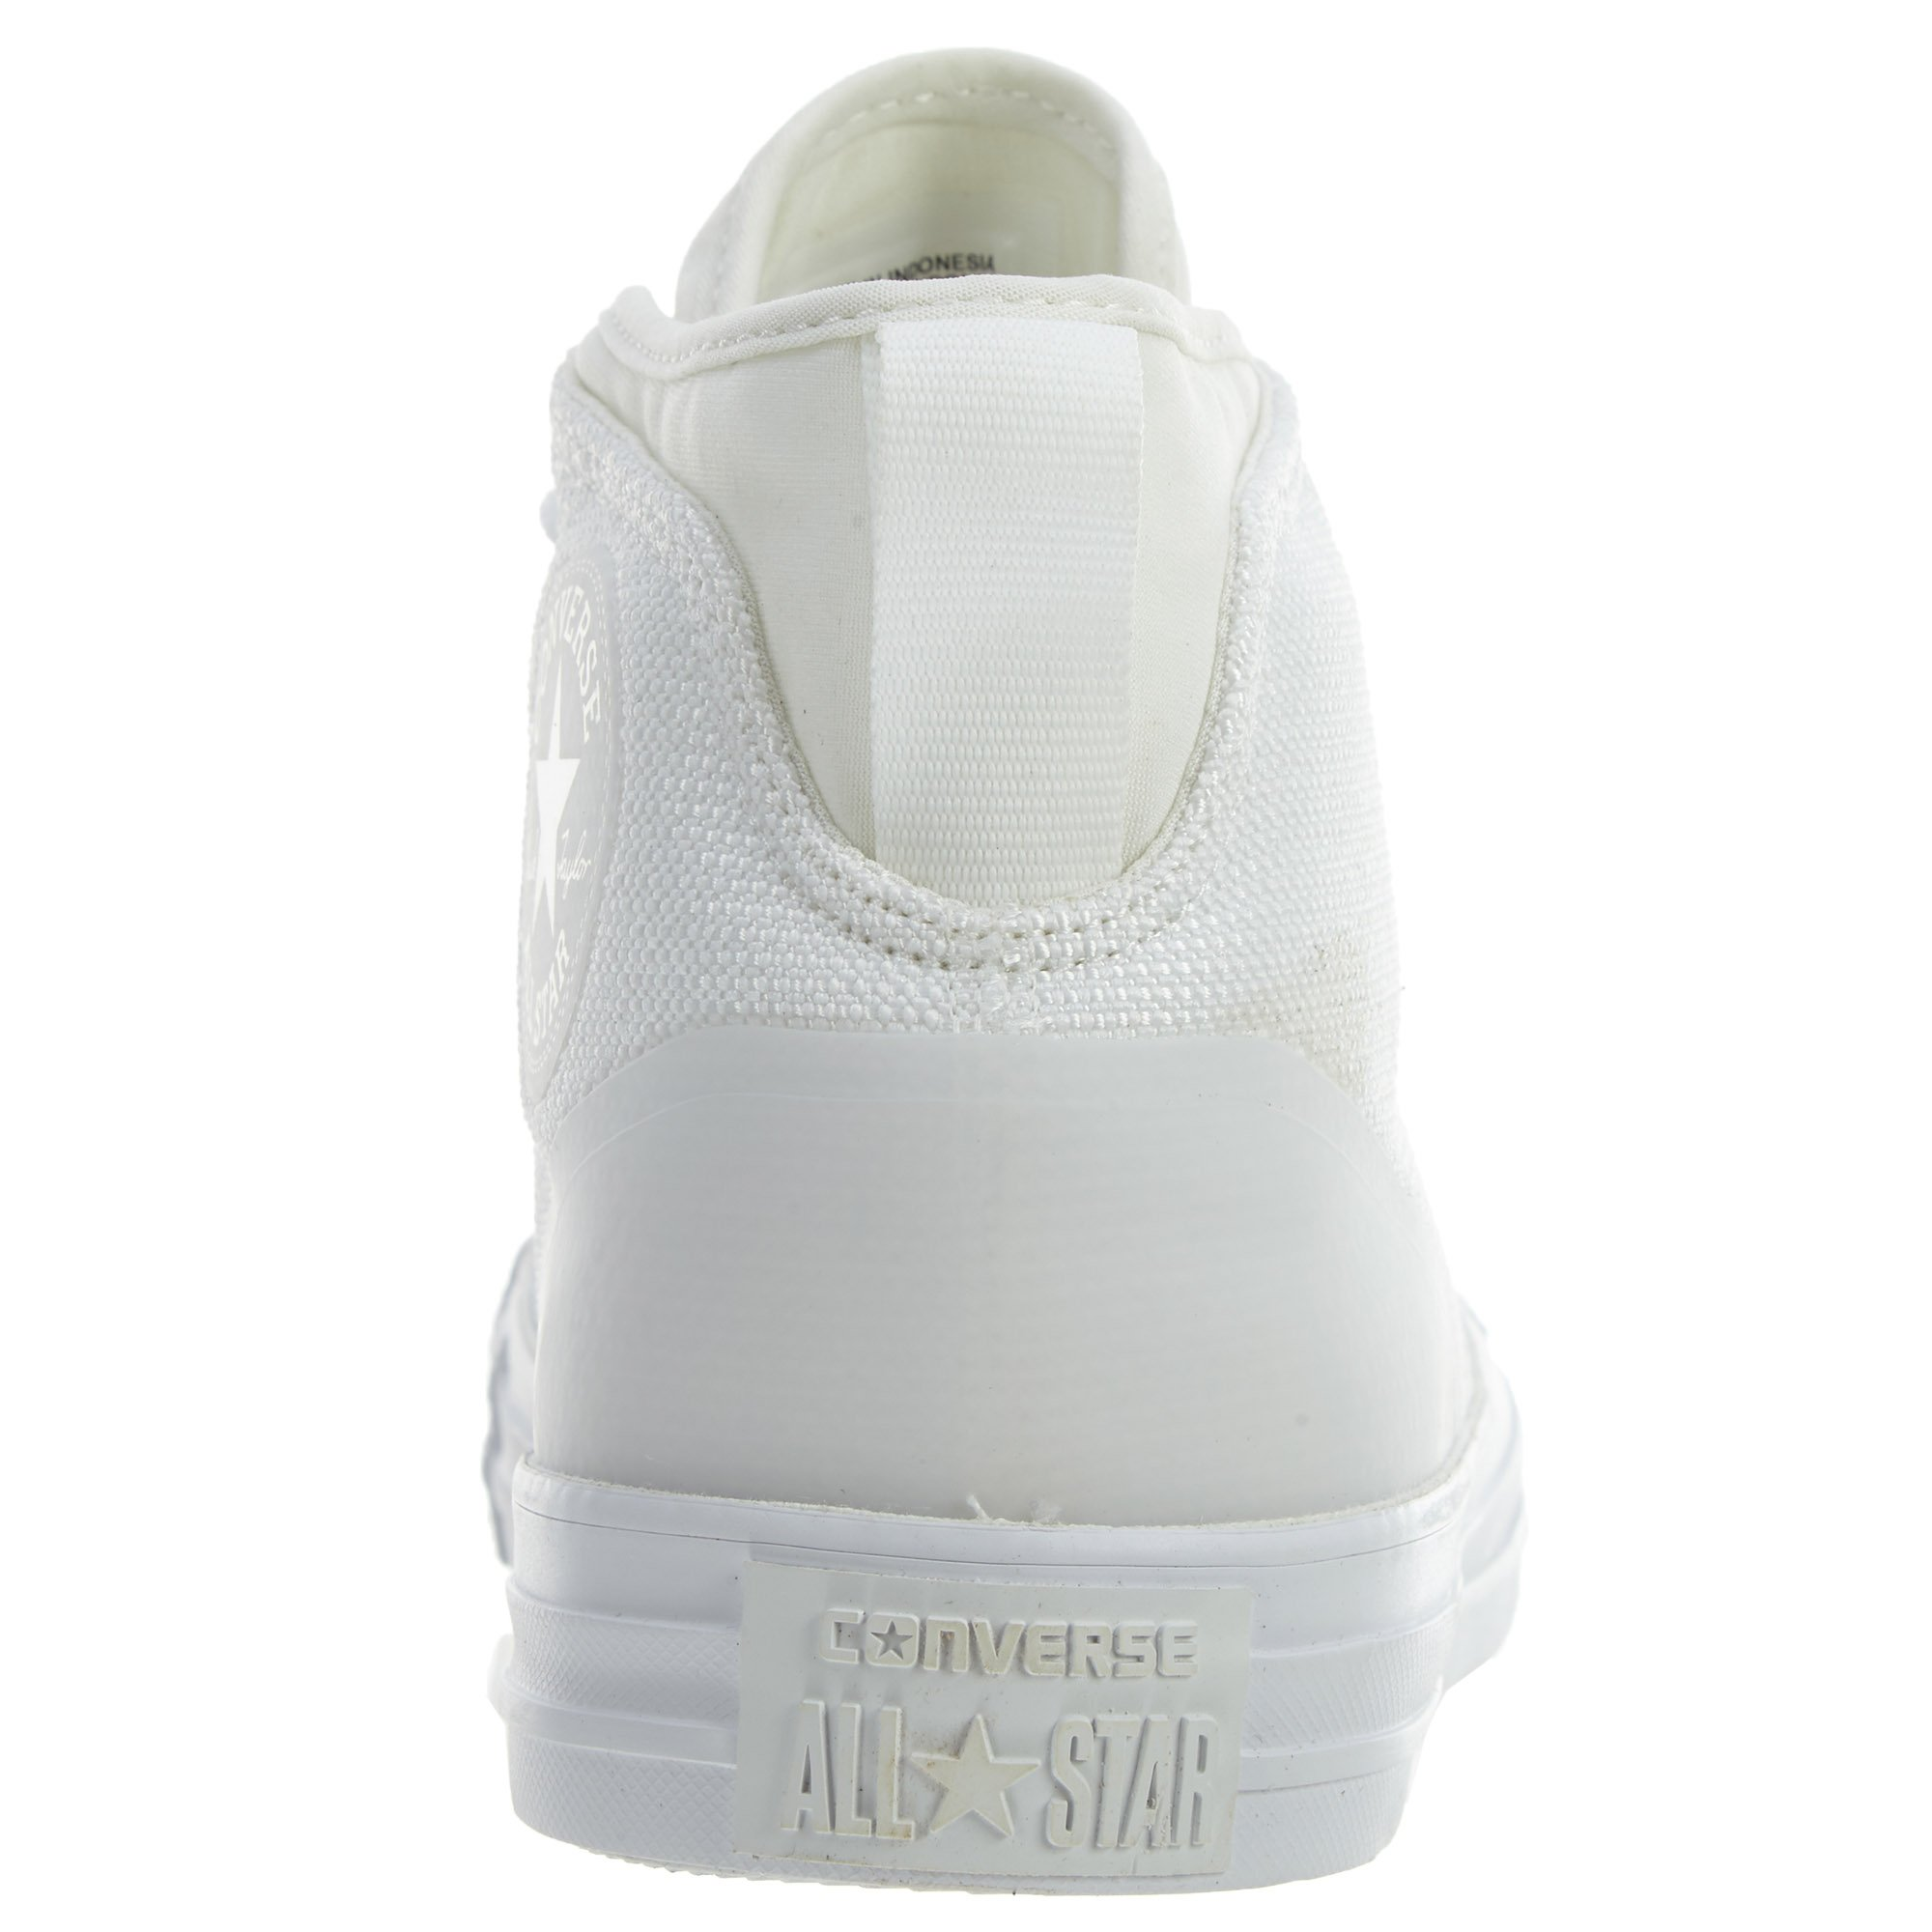 Scarpa Syde Star Street All white Mid Converse zx7w4Cqz